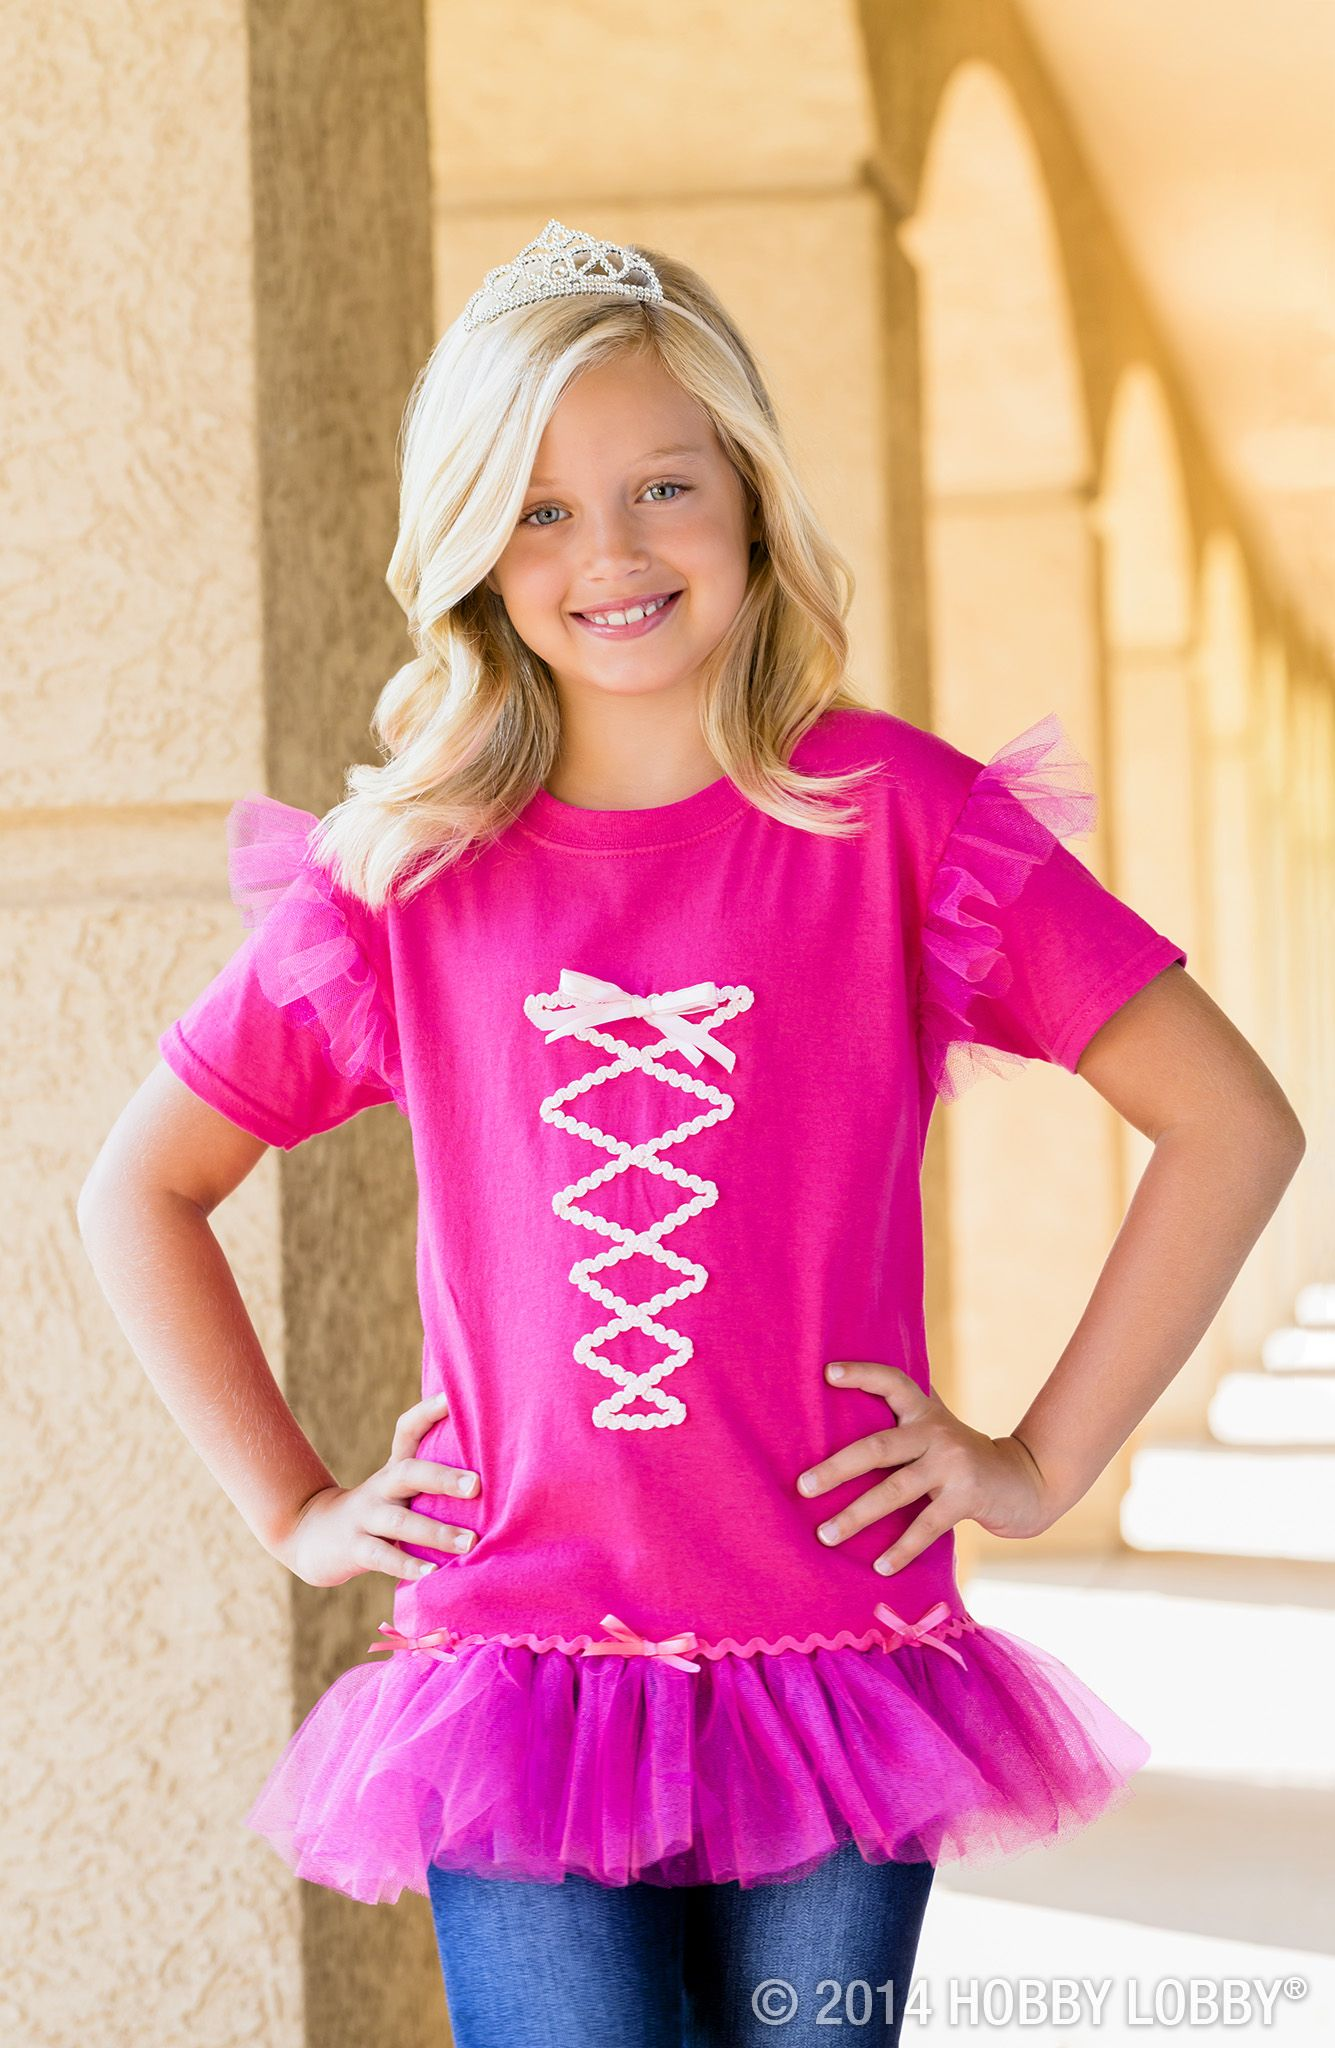 Trick or treat! Turn a plain tshirt into an exciting